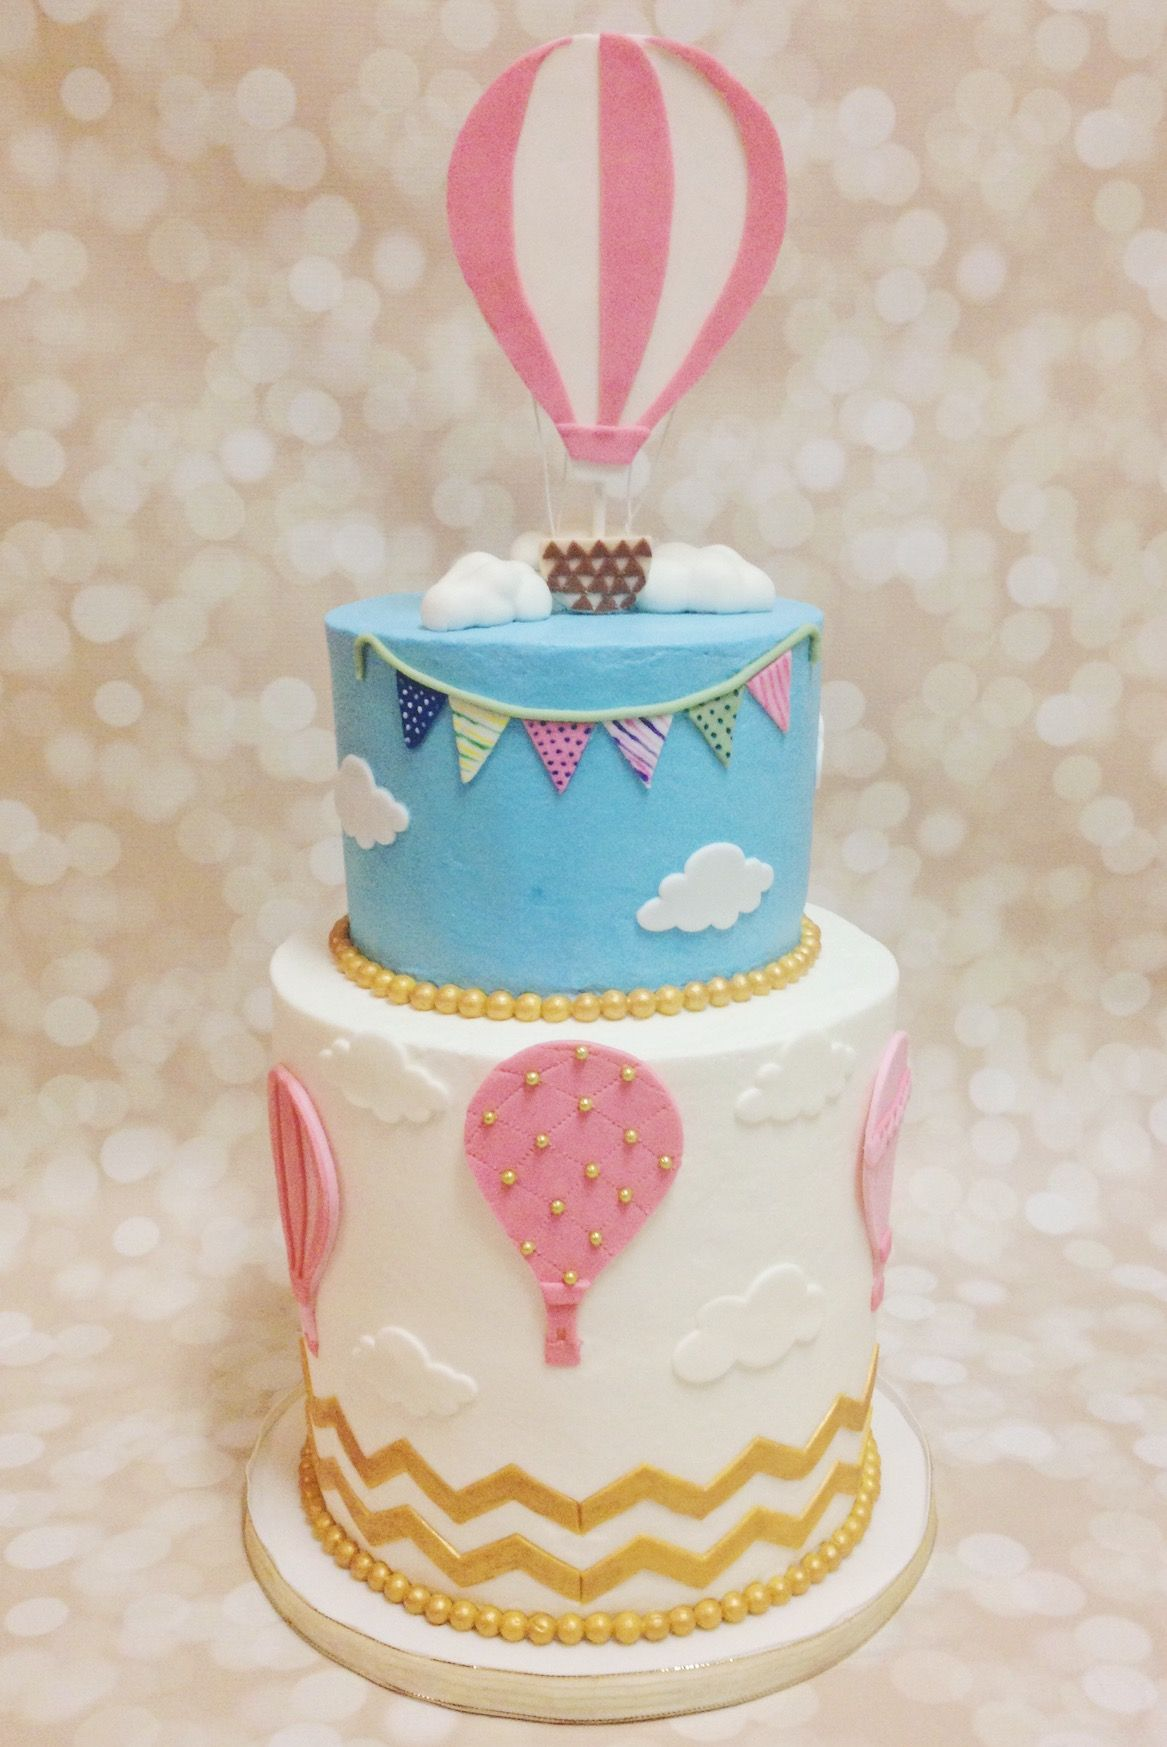 Custom Hot Air Balloon Birthday Cake By A Little Slice Of Heaven Bakery In Atlanta